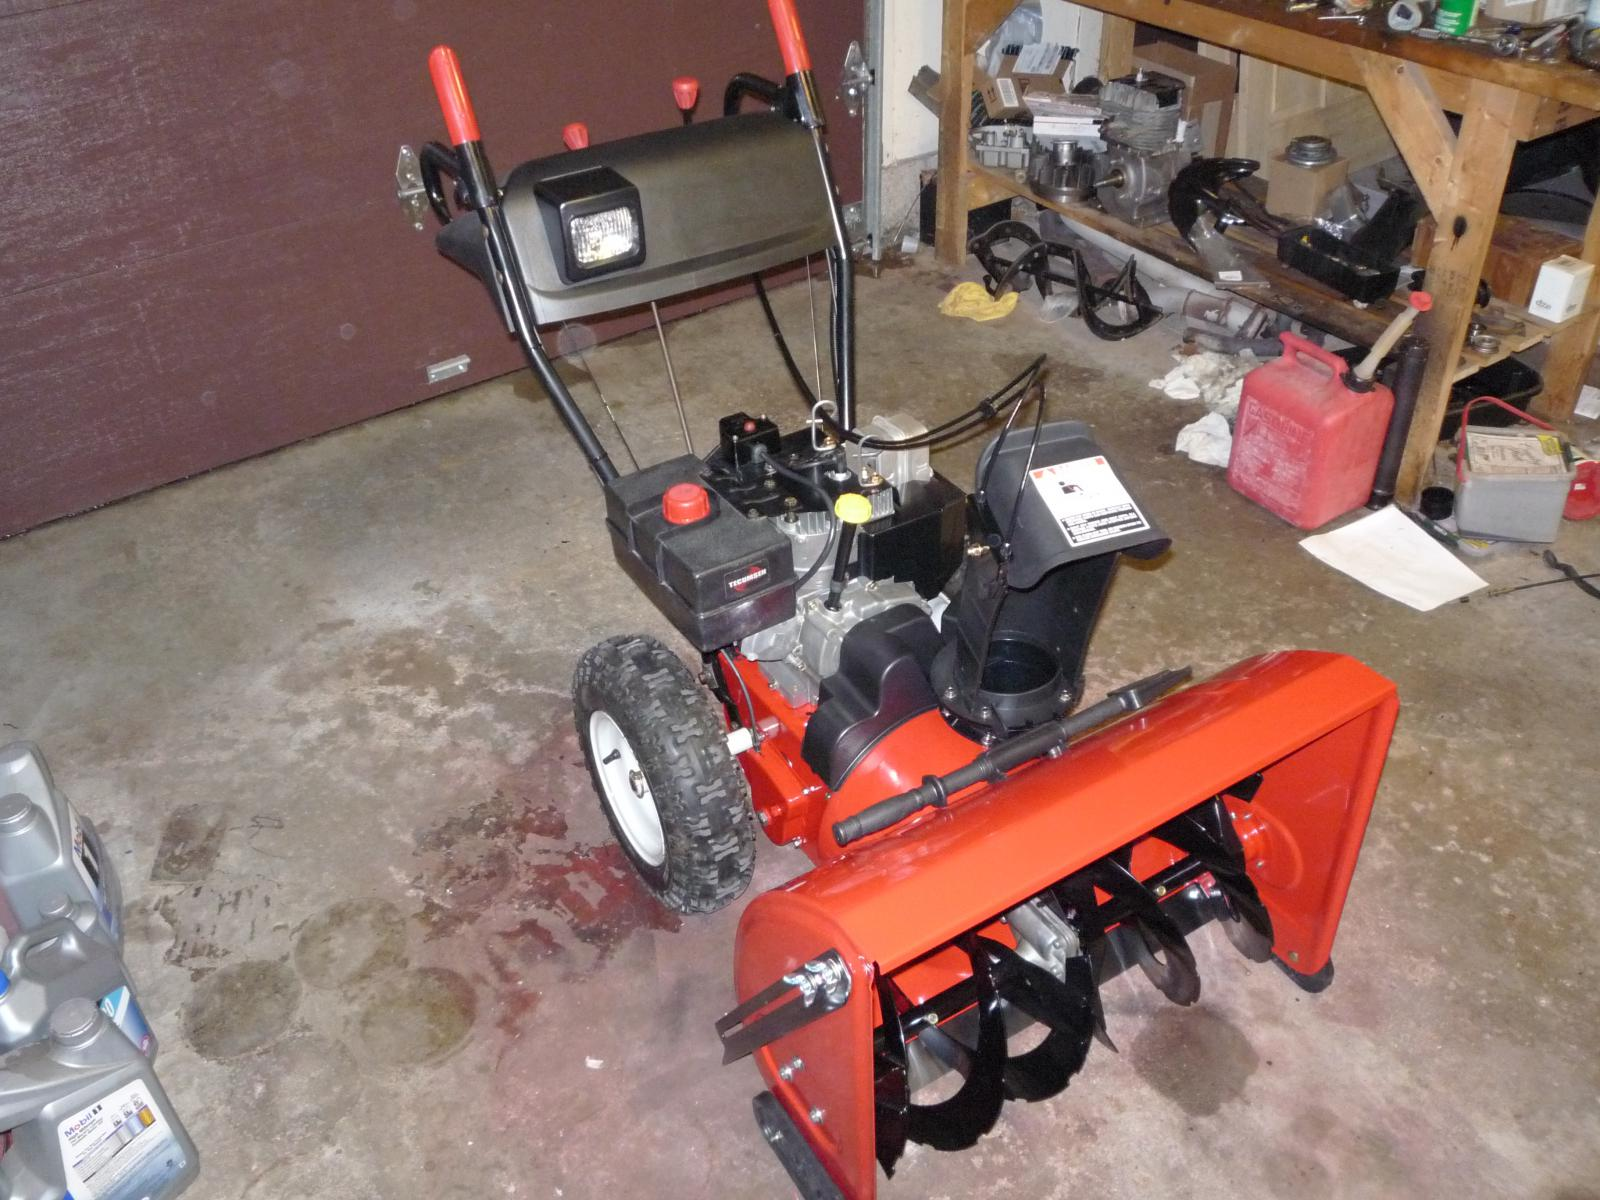 1999 vintage snowblower rebuilds-p1020762.jpg